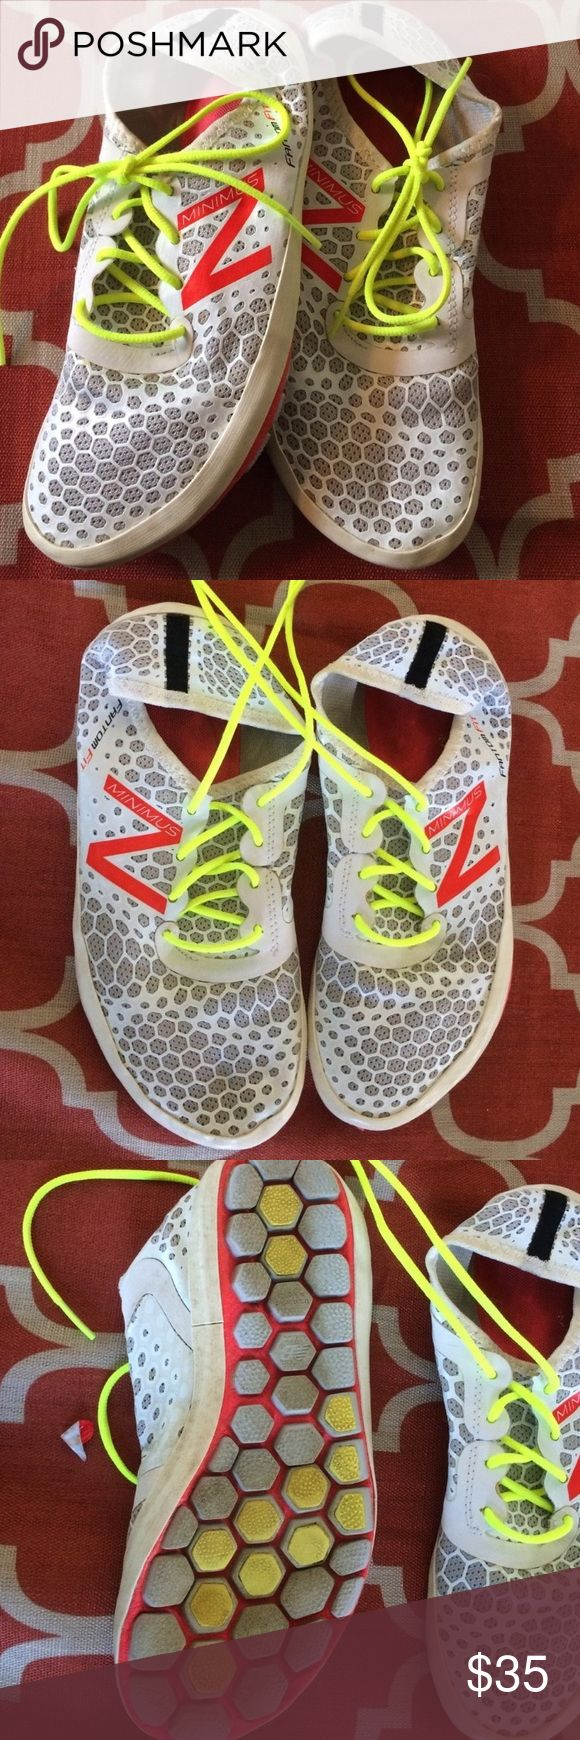 New Balance Minimus Fantom Fit Shoes Worn less than a handful of times, in excellent condition!  Size 8, white with bright color accents. Bundle and save!! New Balance Shoes